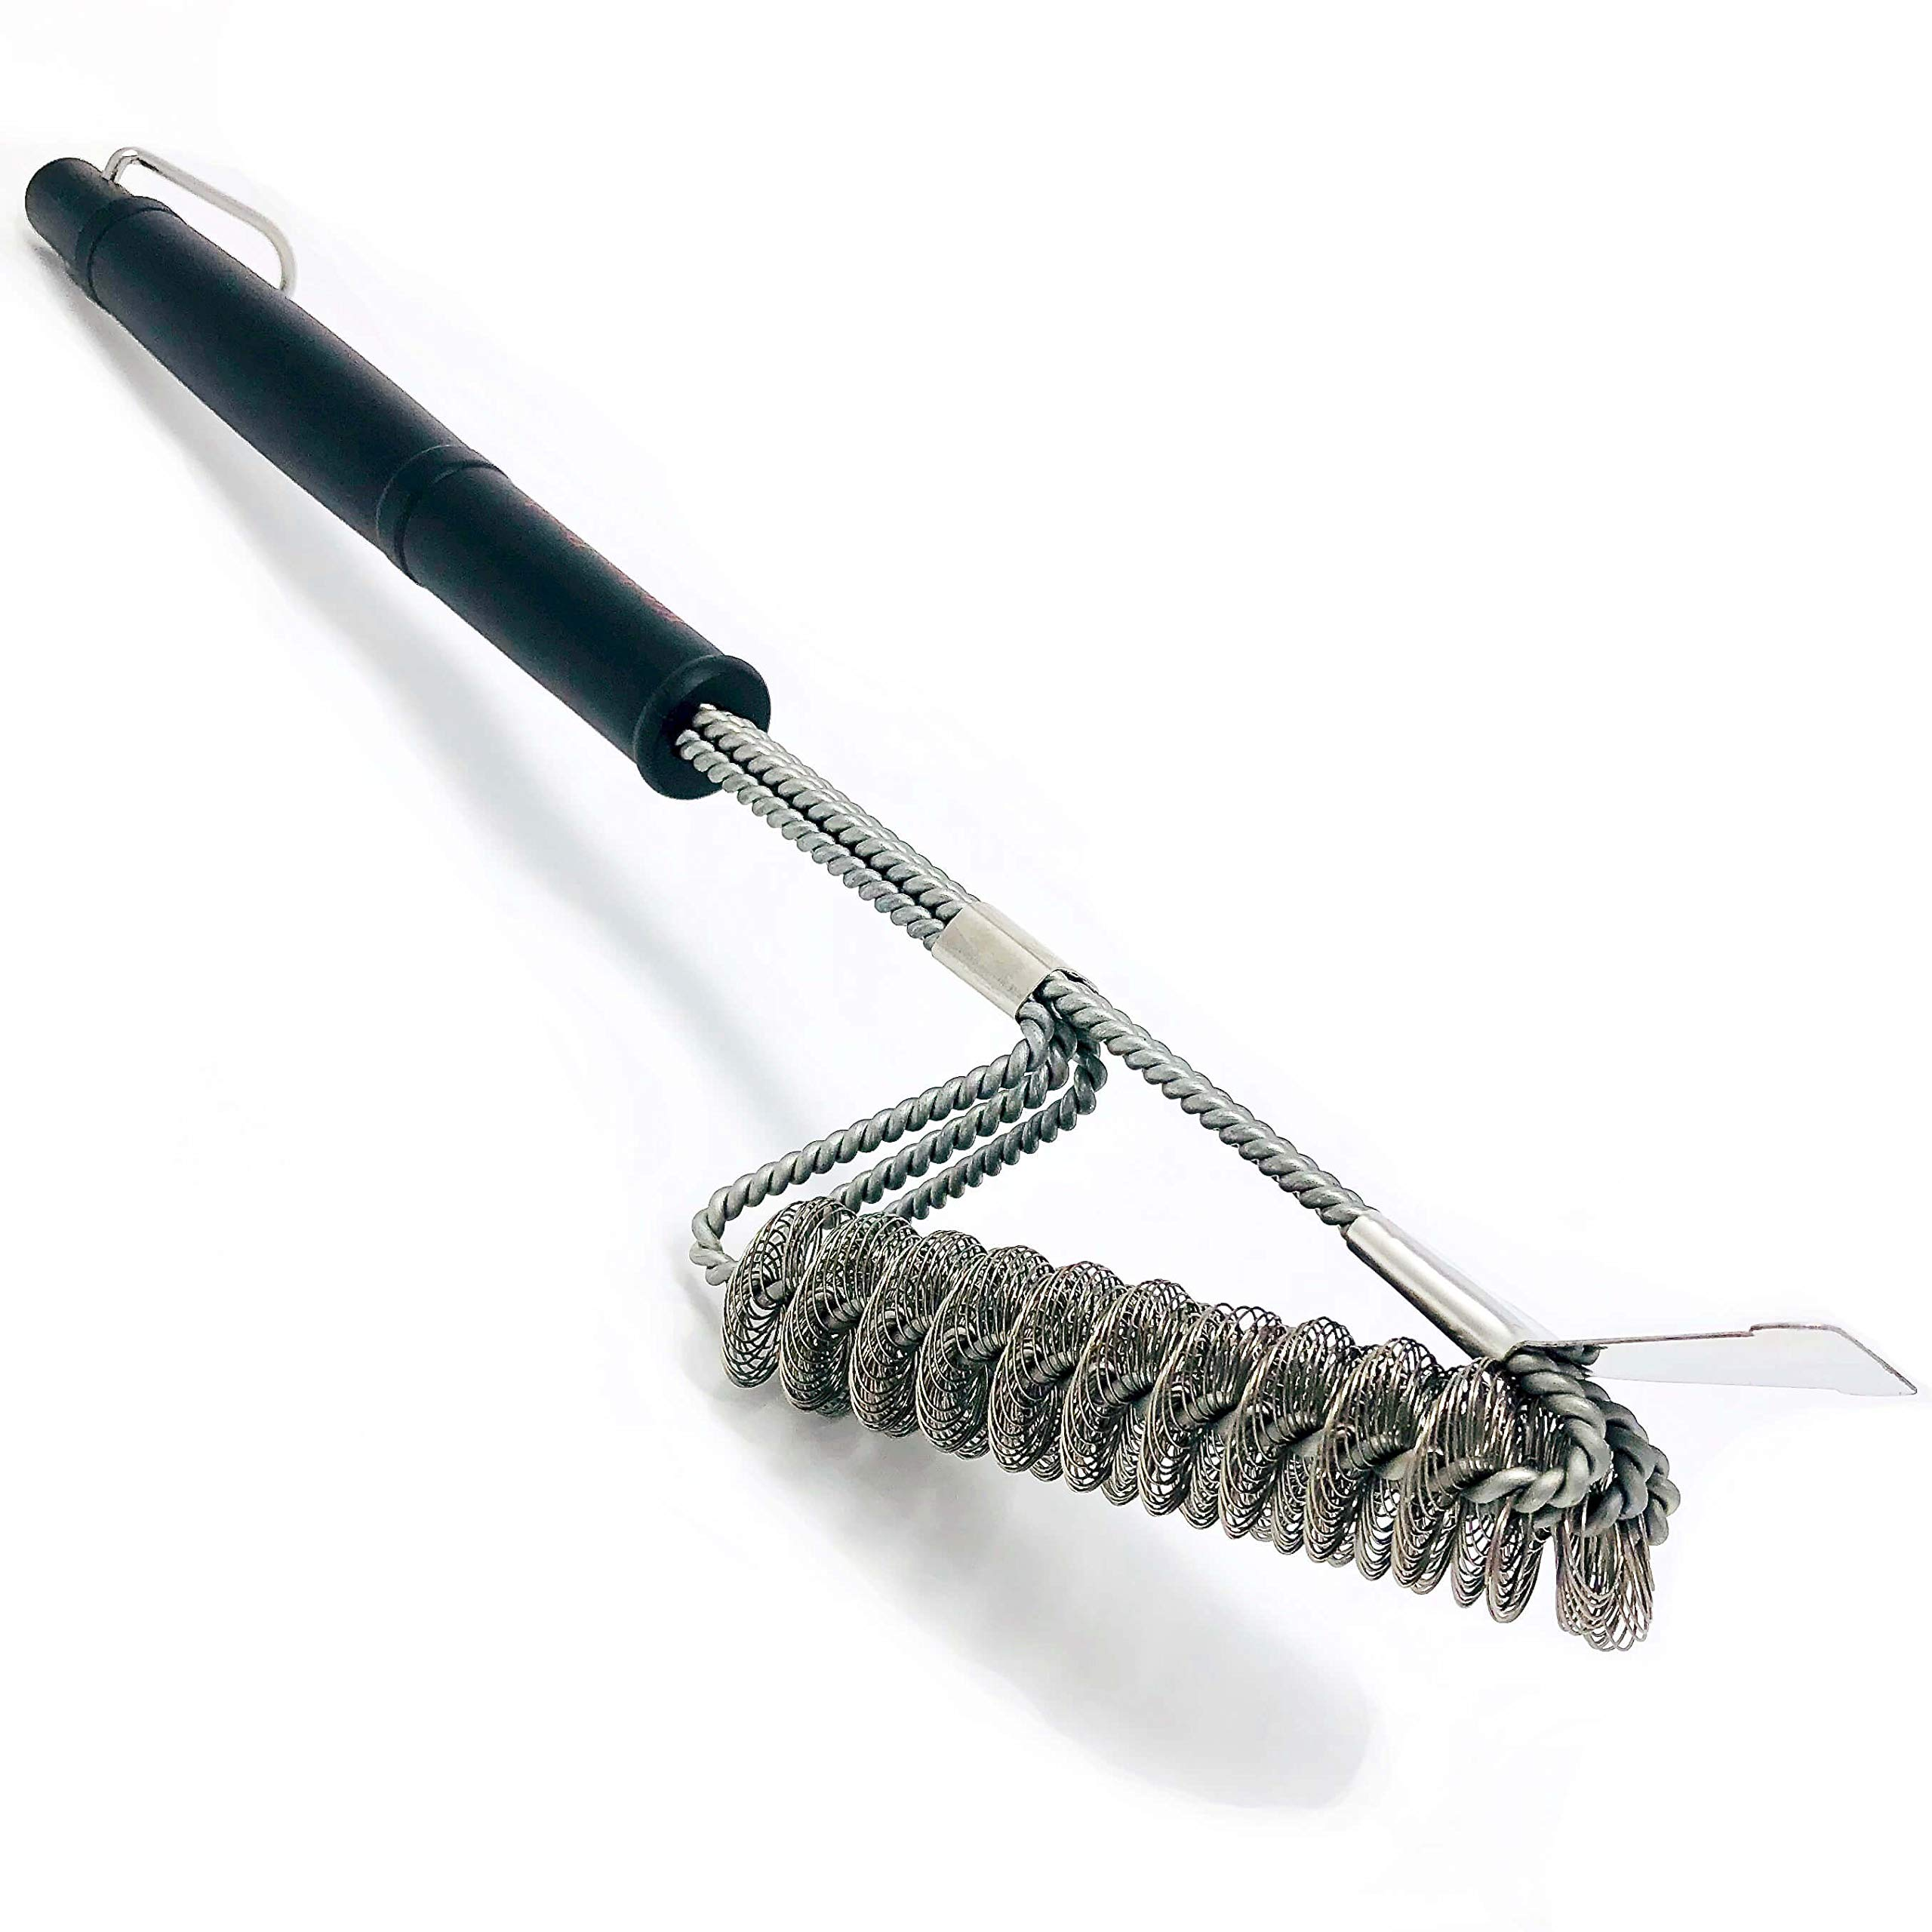 KitchenReady Grill Brush & Scraper Bristle Free Design, Safe BBQ Grill Cleaner, Made with Premium Stainless Steel Coils by KitchenReady